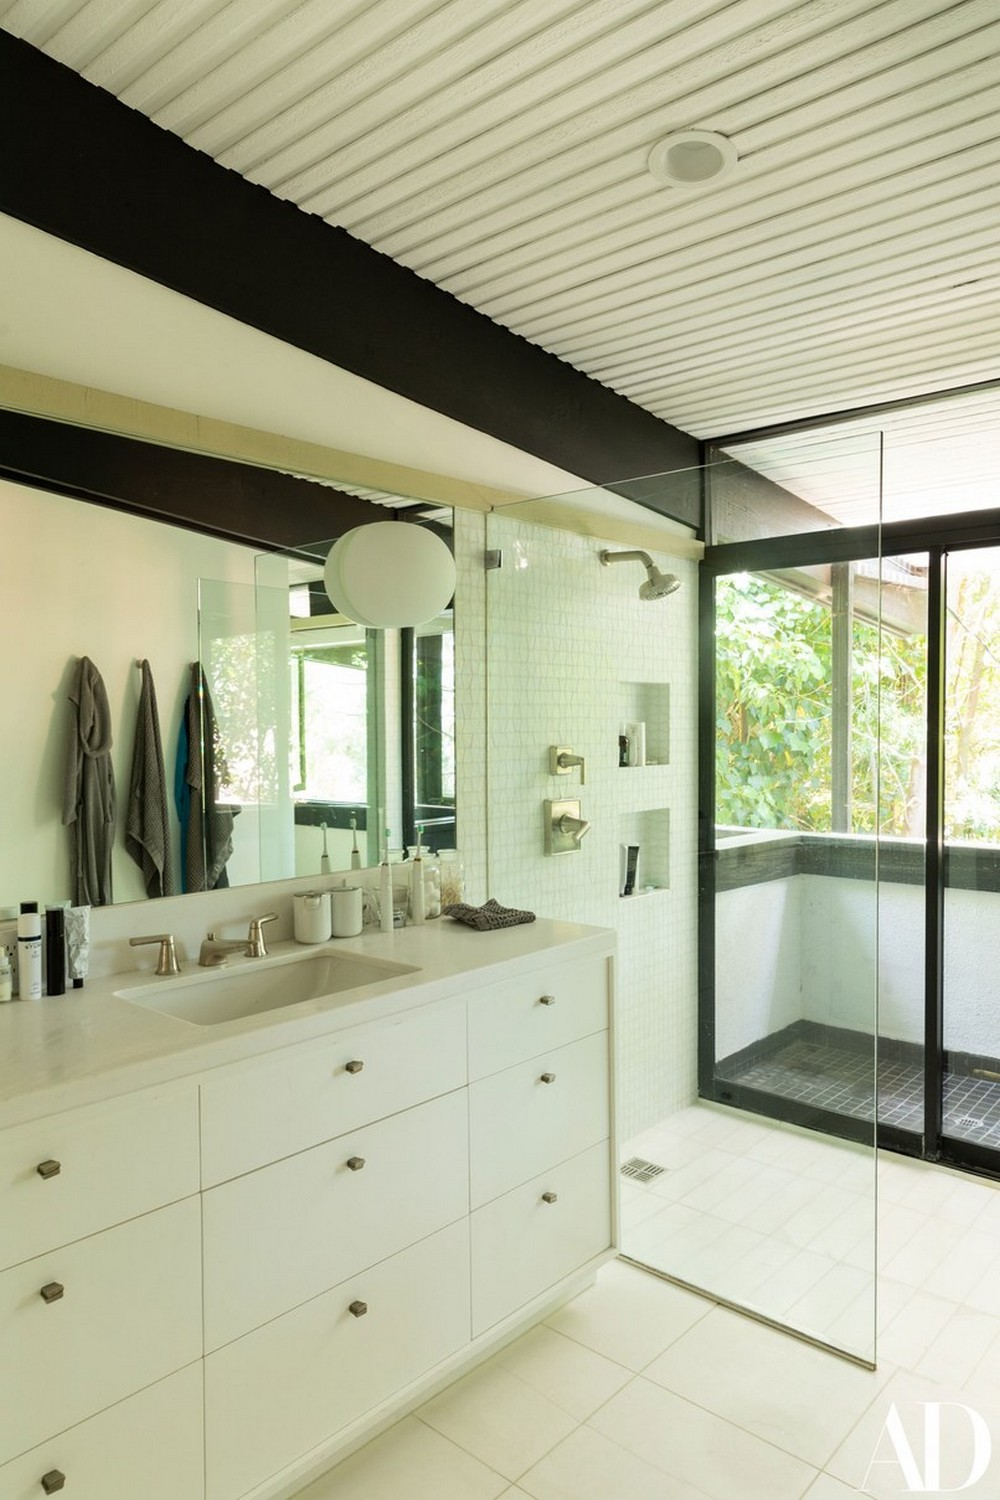 Architectural Digest Shows The Top Celebrity Bathroom Designs architectural digest Architectural Digest Shows The Top Celebrity Bathroom Designs Architectural Digest Shows The Top Celebrity Bathroom Designs 3